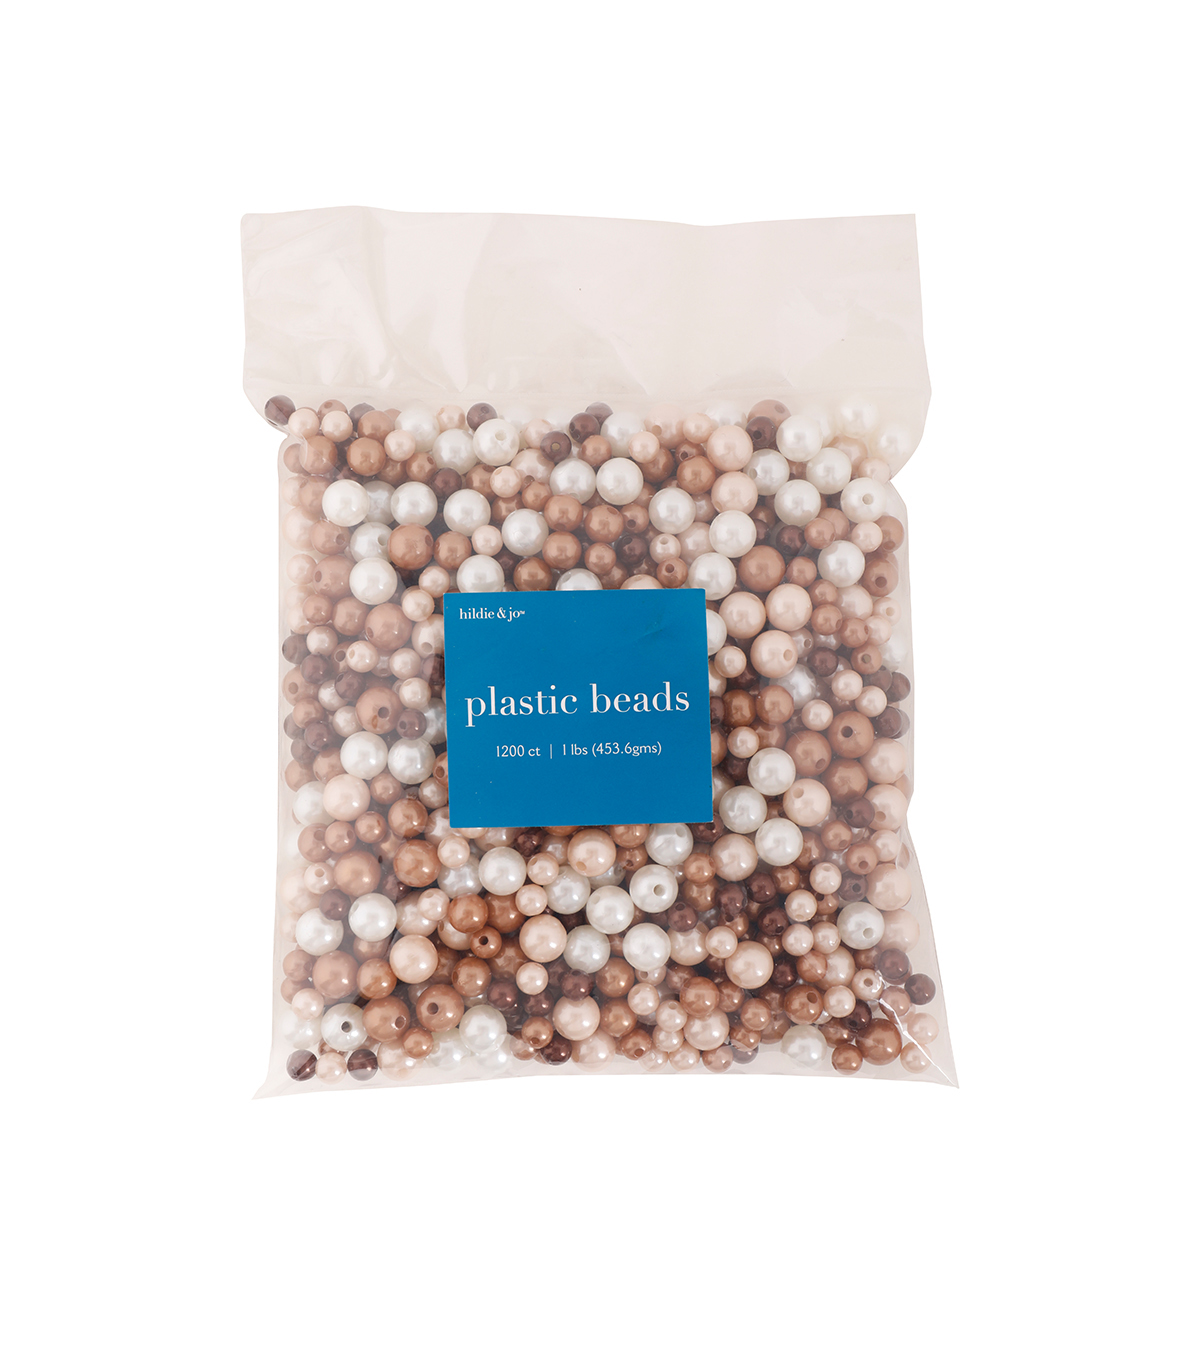 hildie & jo 1200 pk Round Plastic Pearl Beads-Mixed